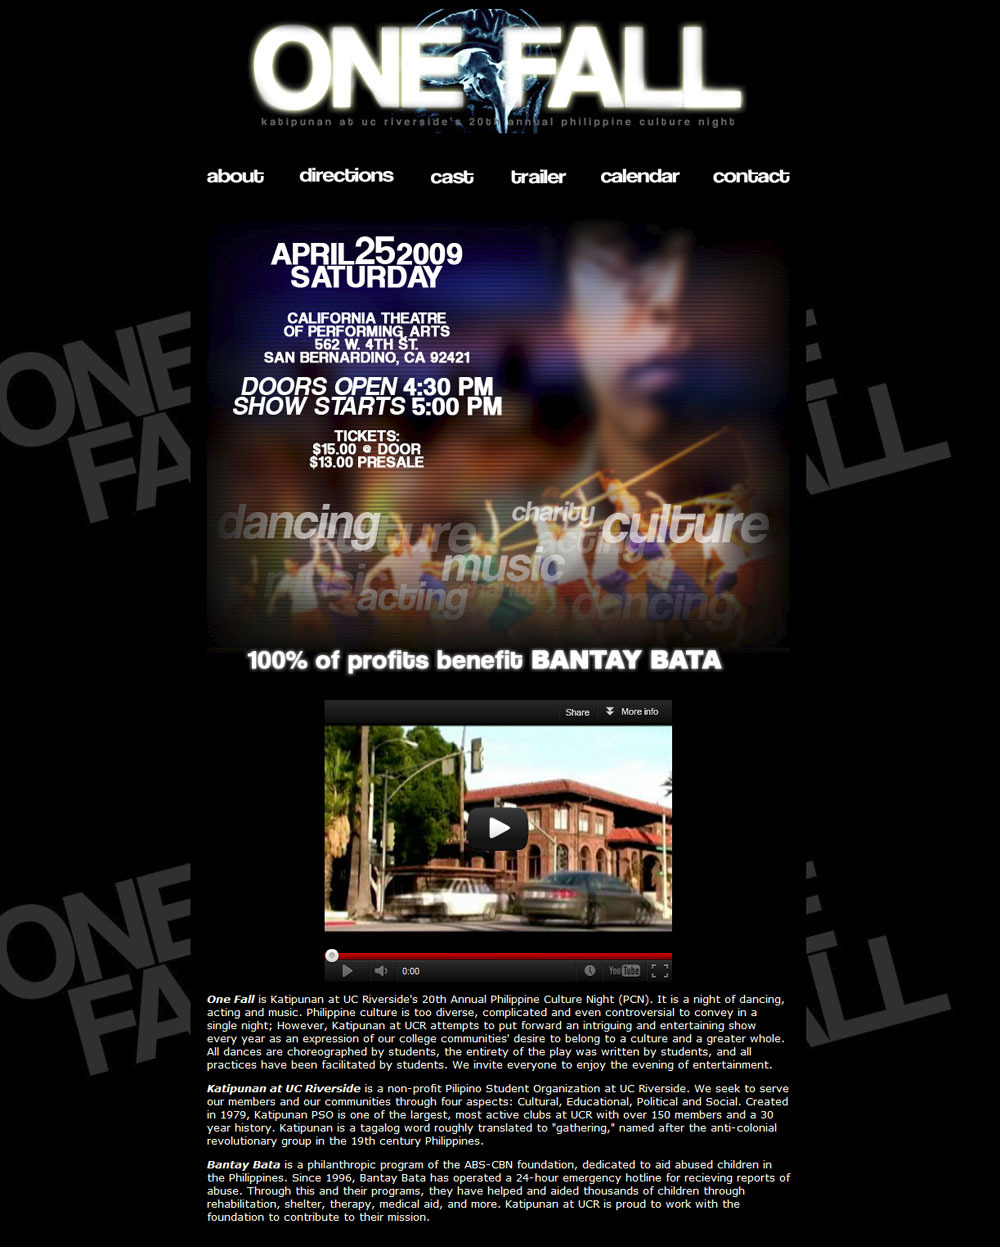 Site design for a play/cultural show at the California Theater of Performing Arts in San Bernardino (2009)